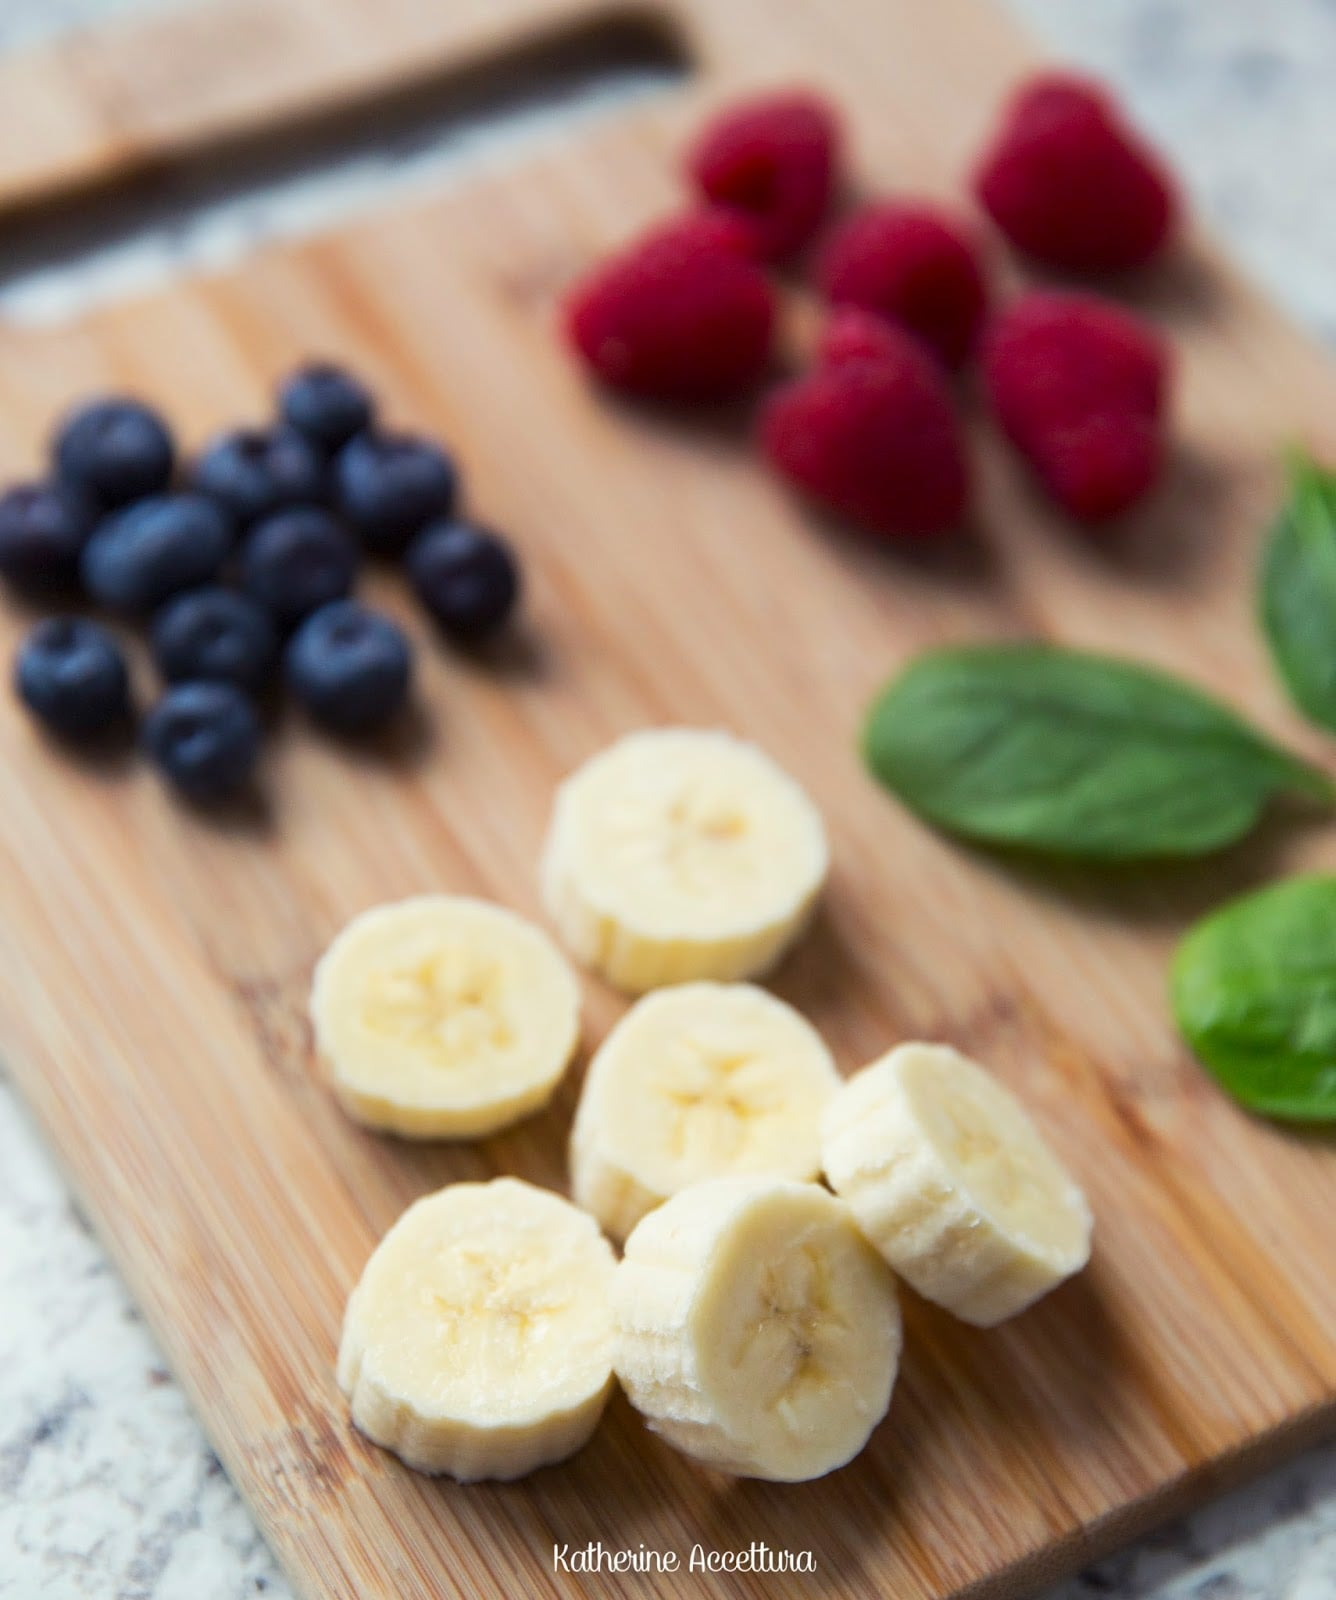 Awesome Smoothie Recipe!